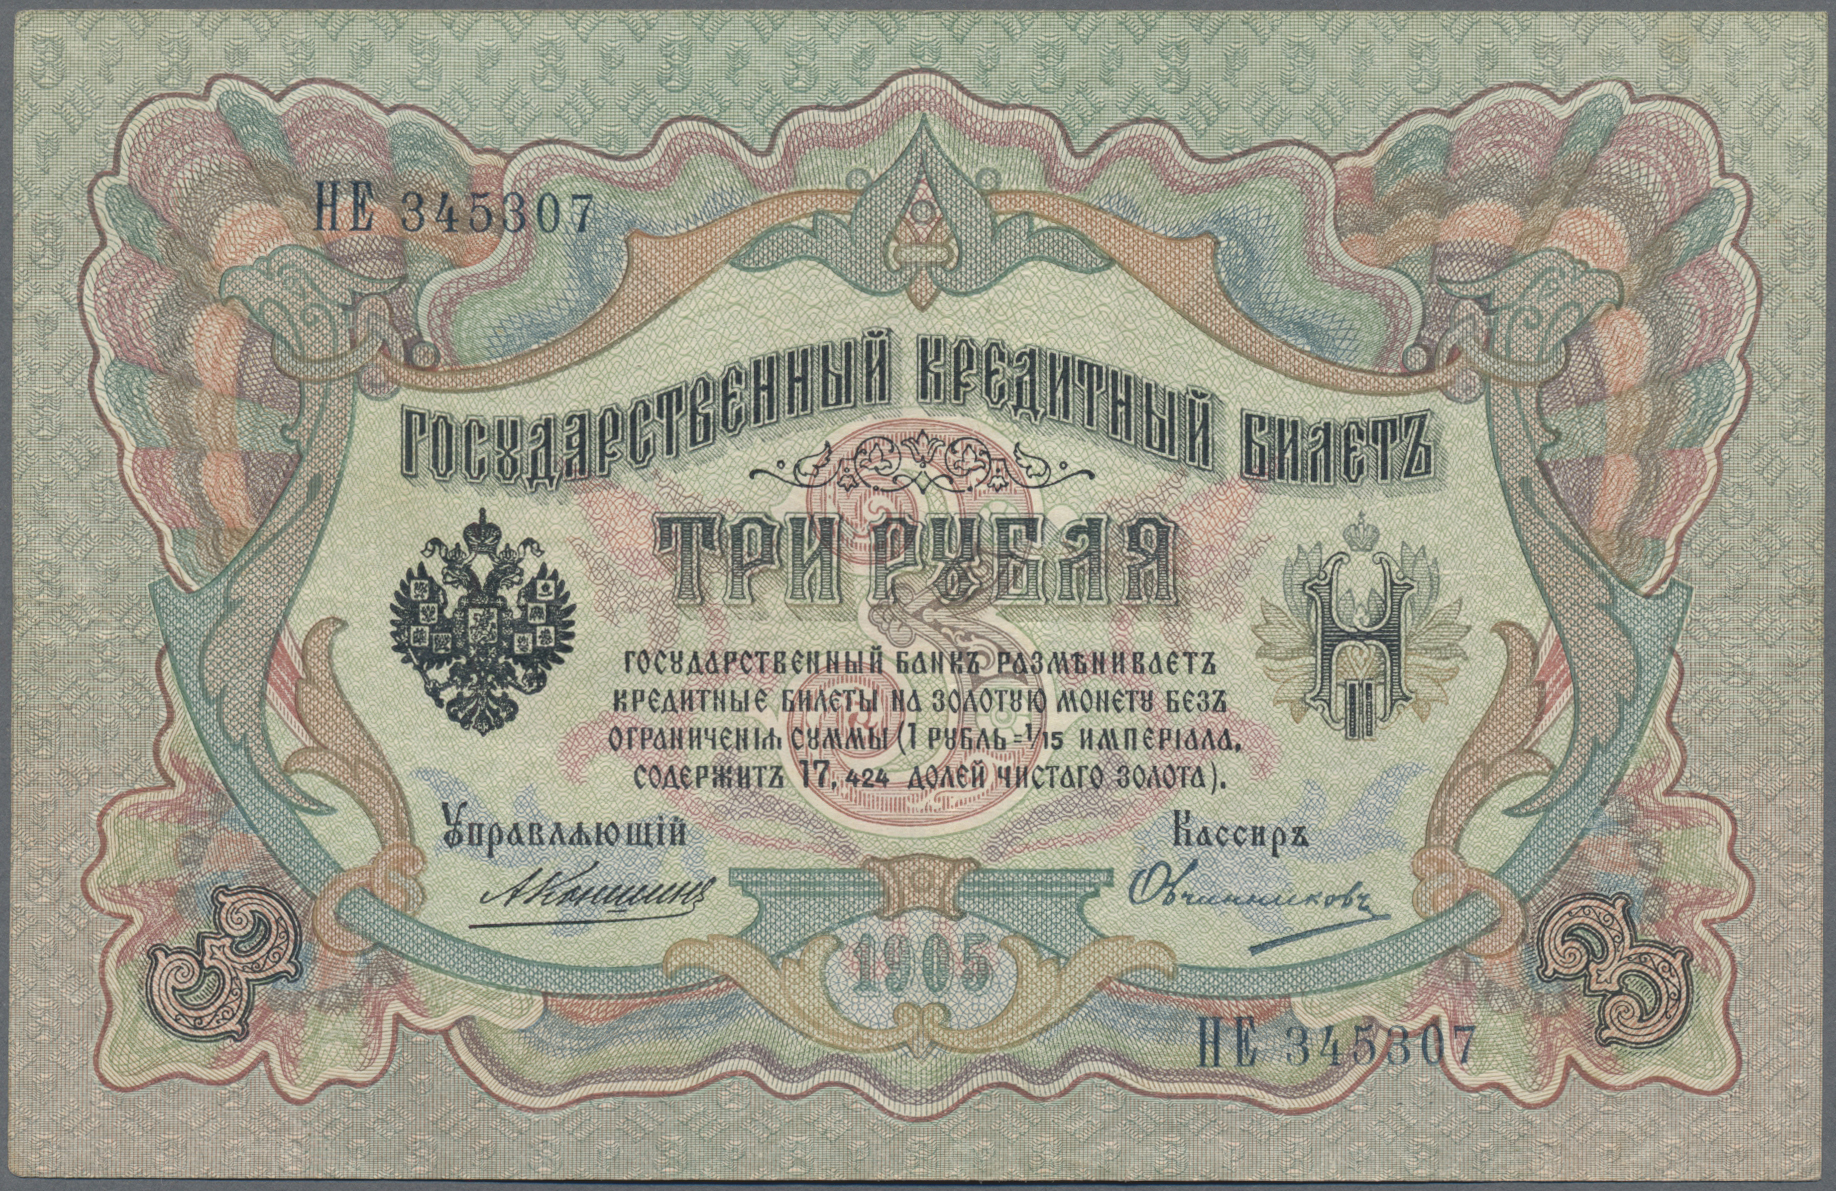 Lot 00399 - Russia / Russland   Banknoten  -  Auktionshaus Christoph Gärtner GmbH & Co. KG 51th Auction - Day 1